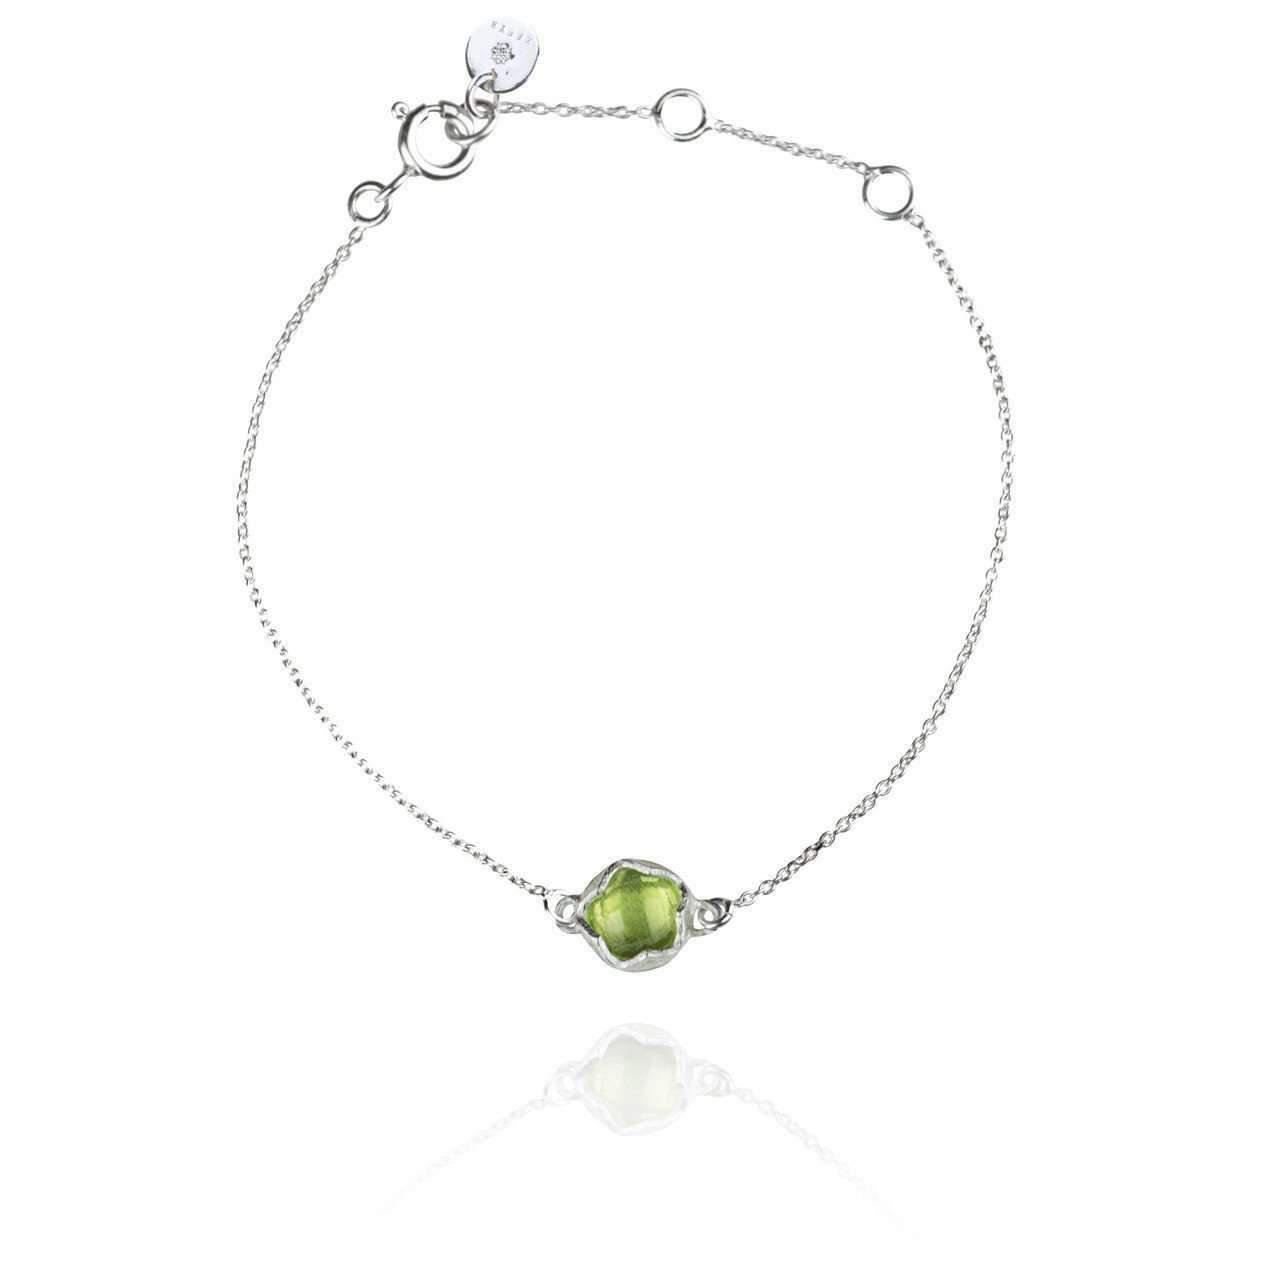 Zefyr Dosha Necklace Sterling Silver With Peridot